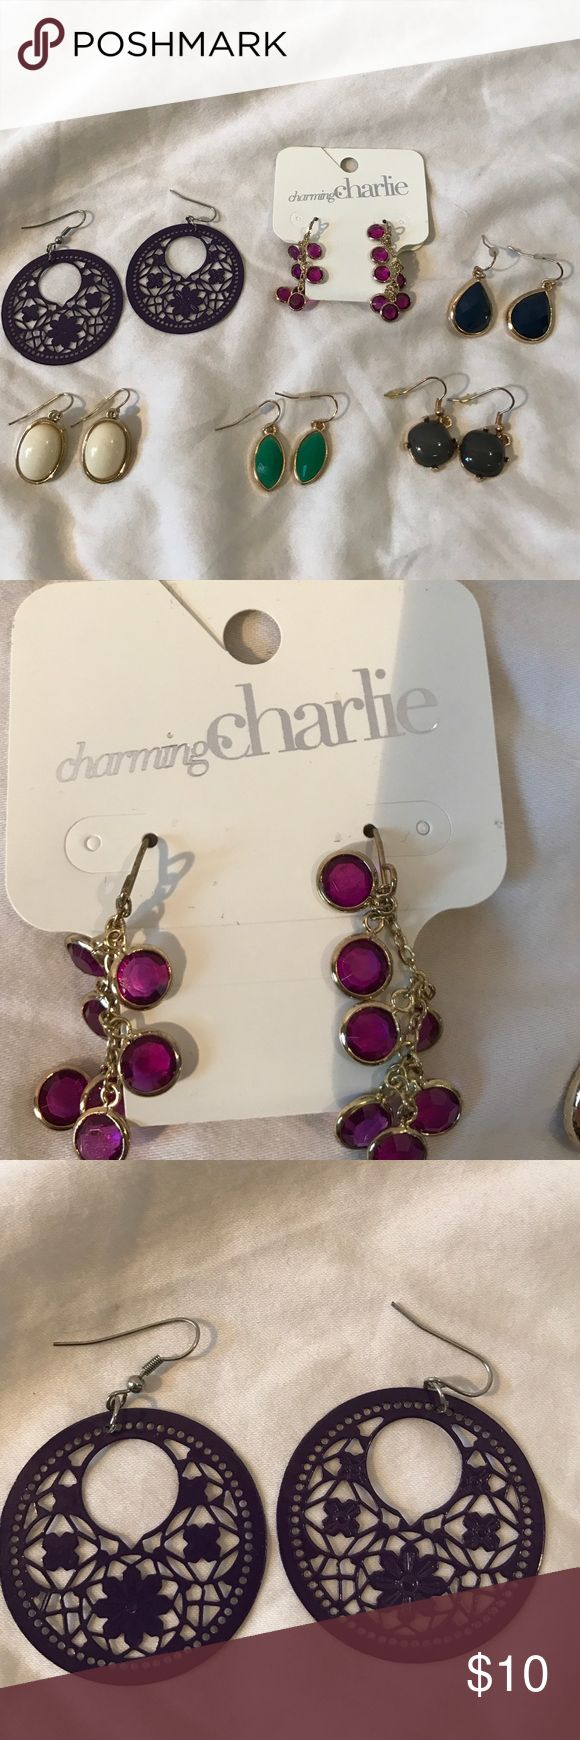 Earrings from Charming Charlie 6 pairs of earrings: purple, navy, white, green and grey, seeking all together Charming Charlie Jewelry Earrings